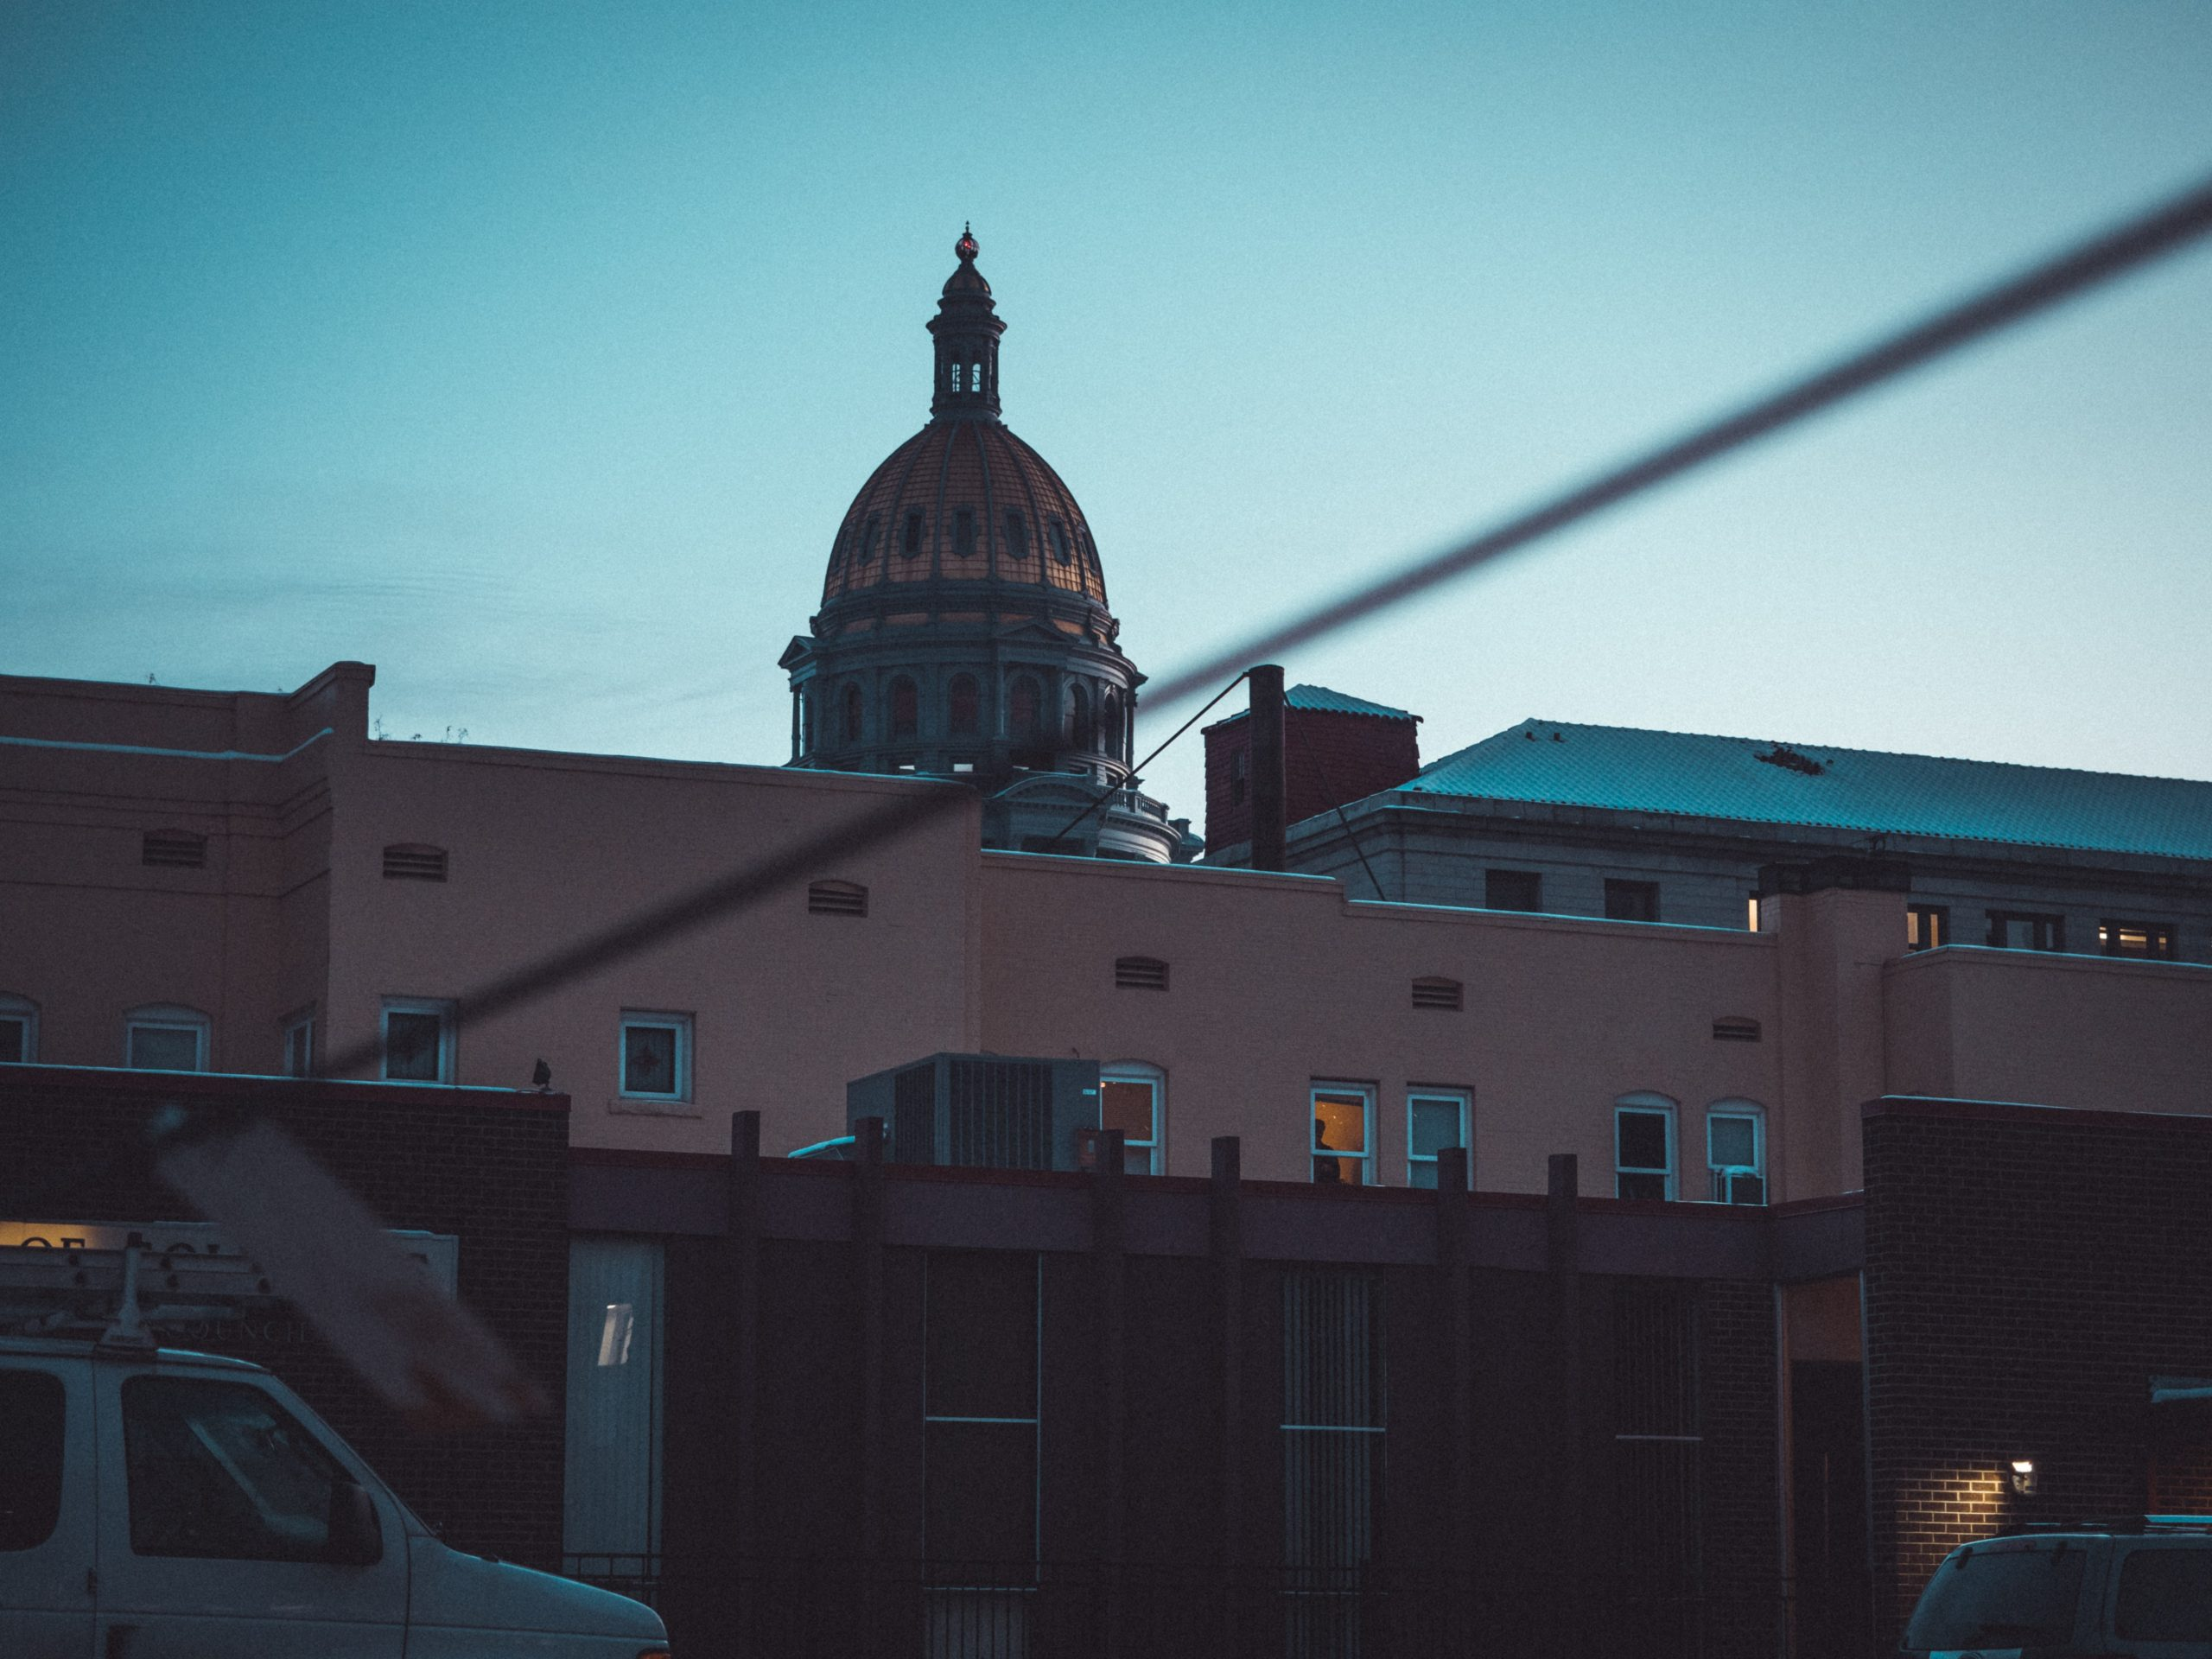 The dome of the Denver State Capitol Building as seen behind apartment buildings